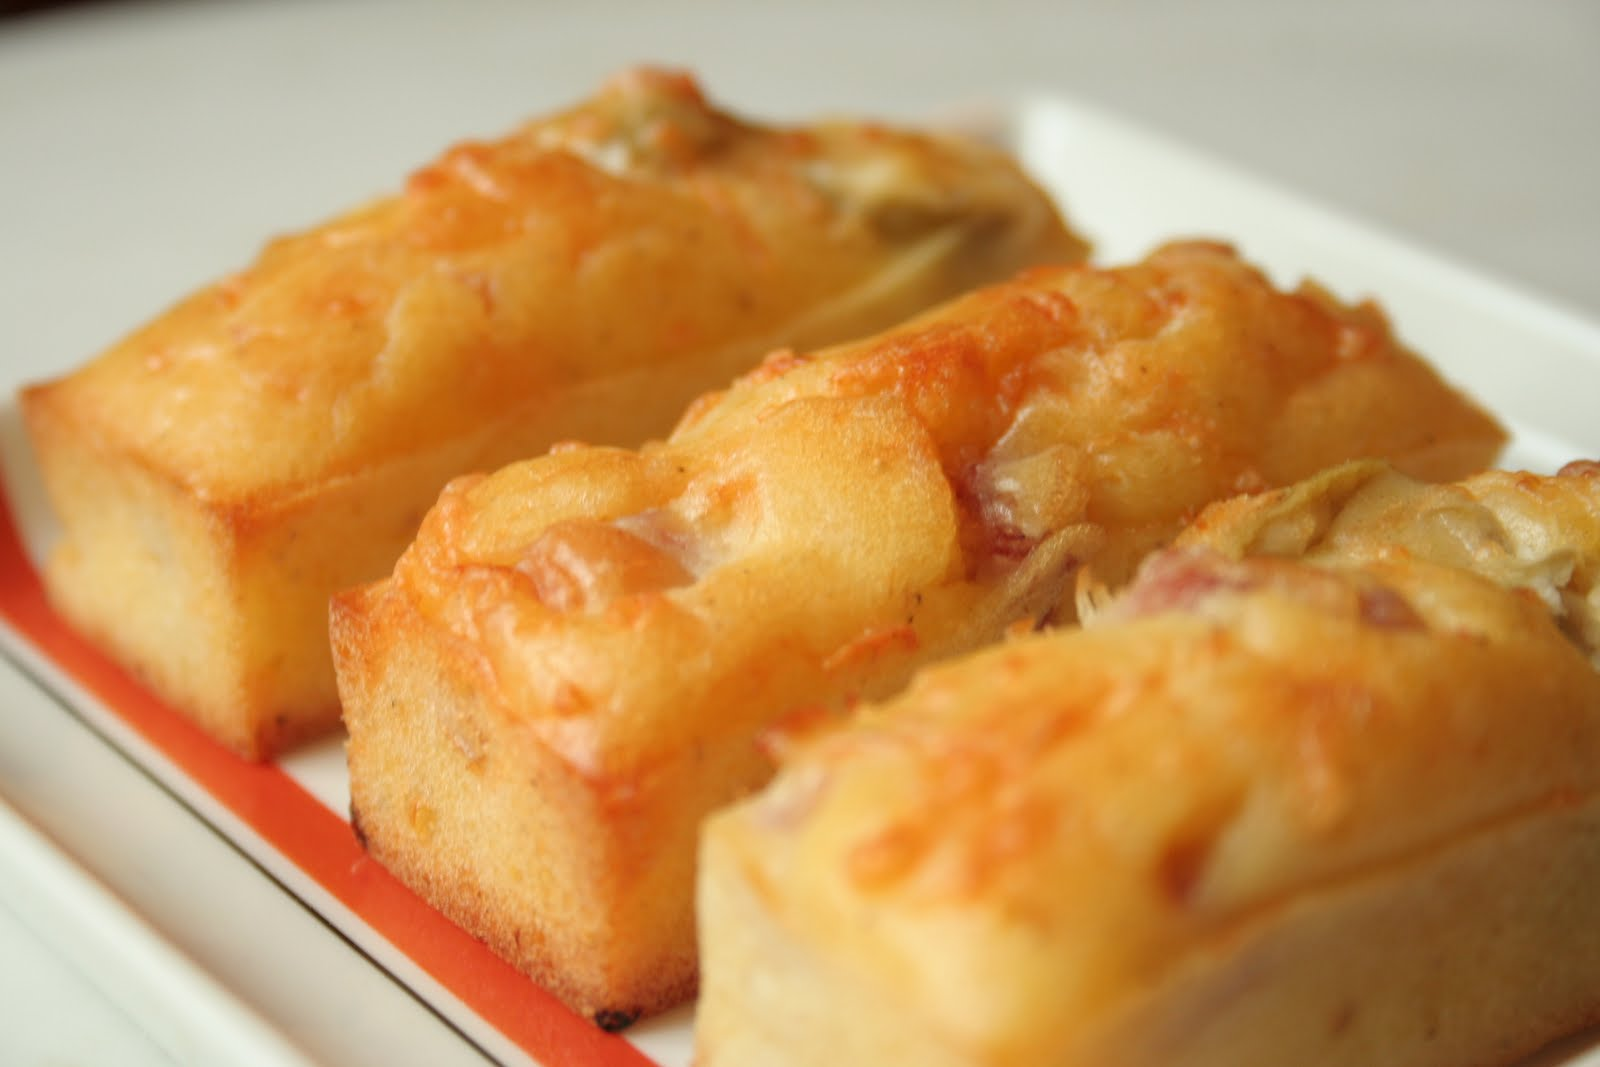 Cake Fromage Des Jambon